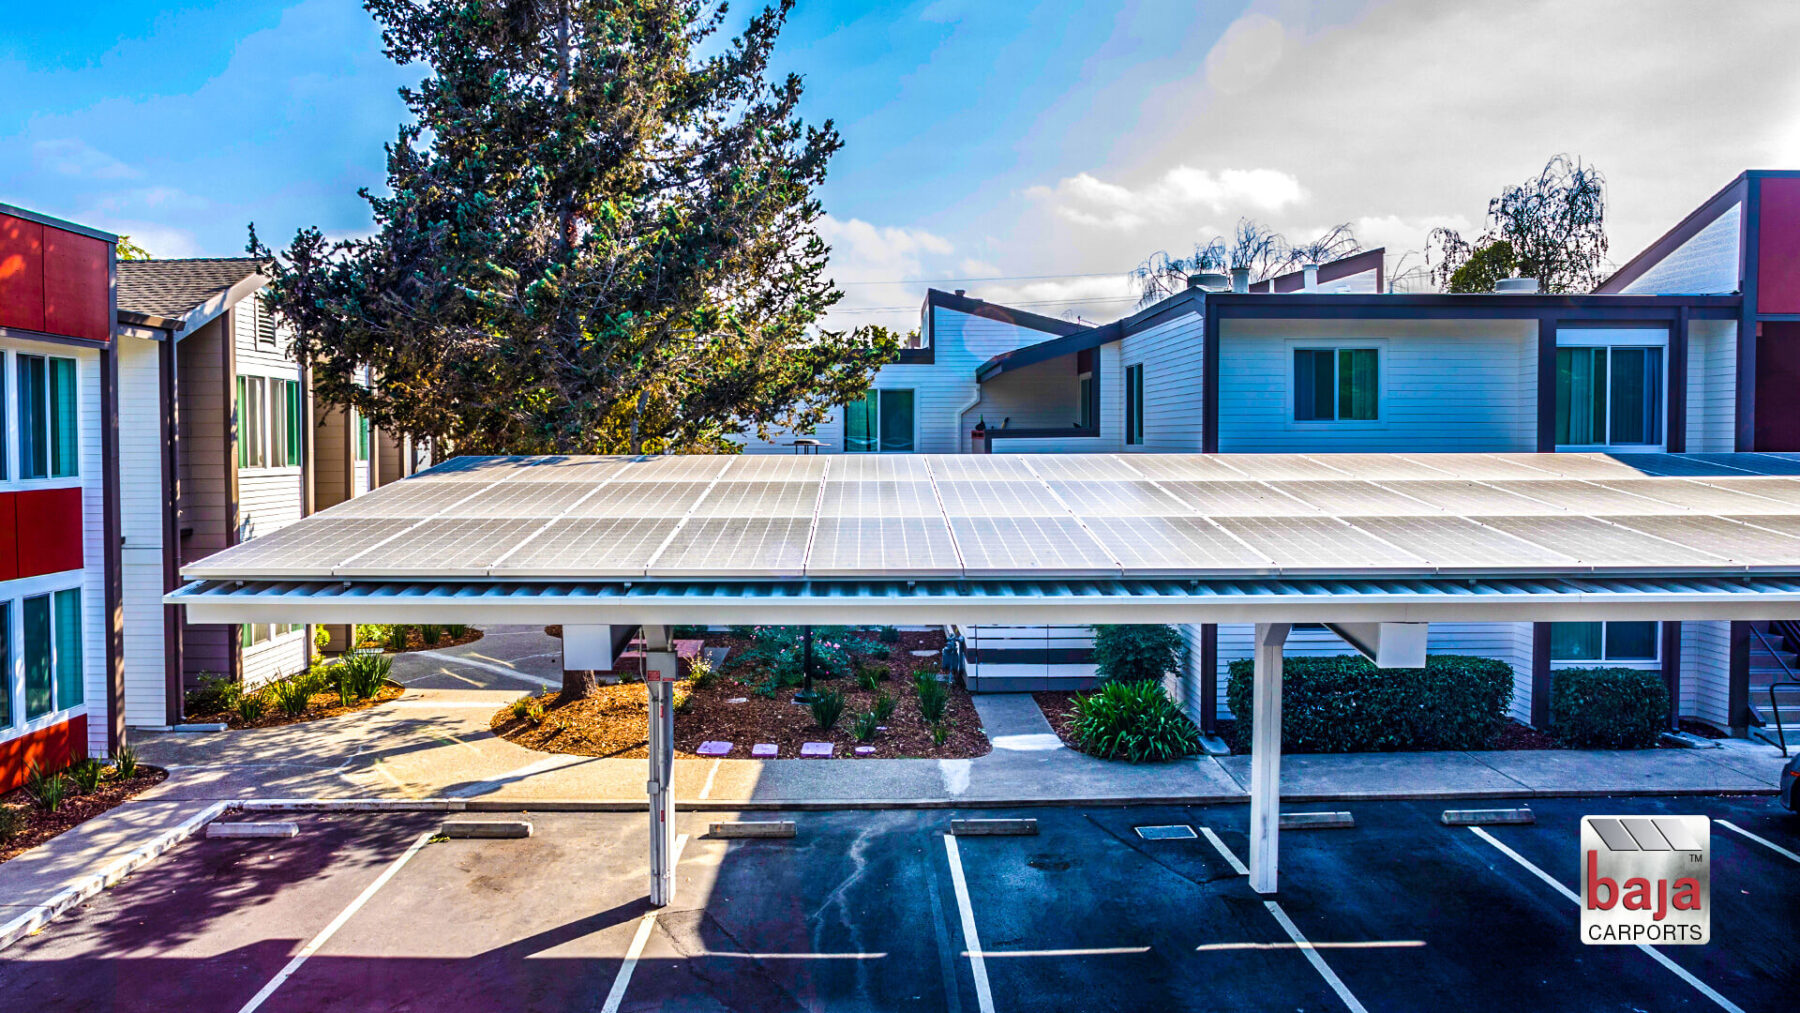 affordable housing colorado apartments palo alto tenant baja carport parking